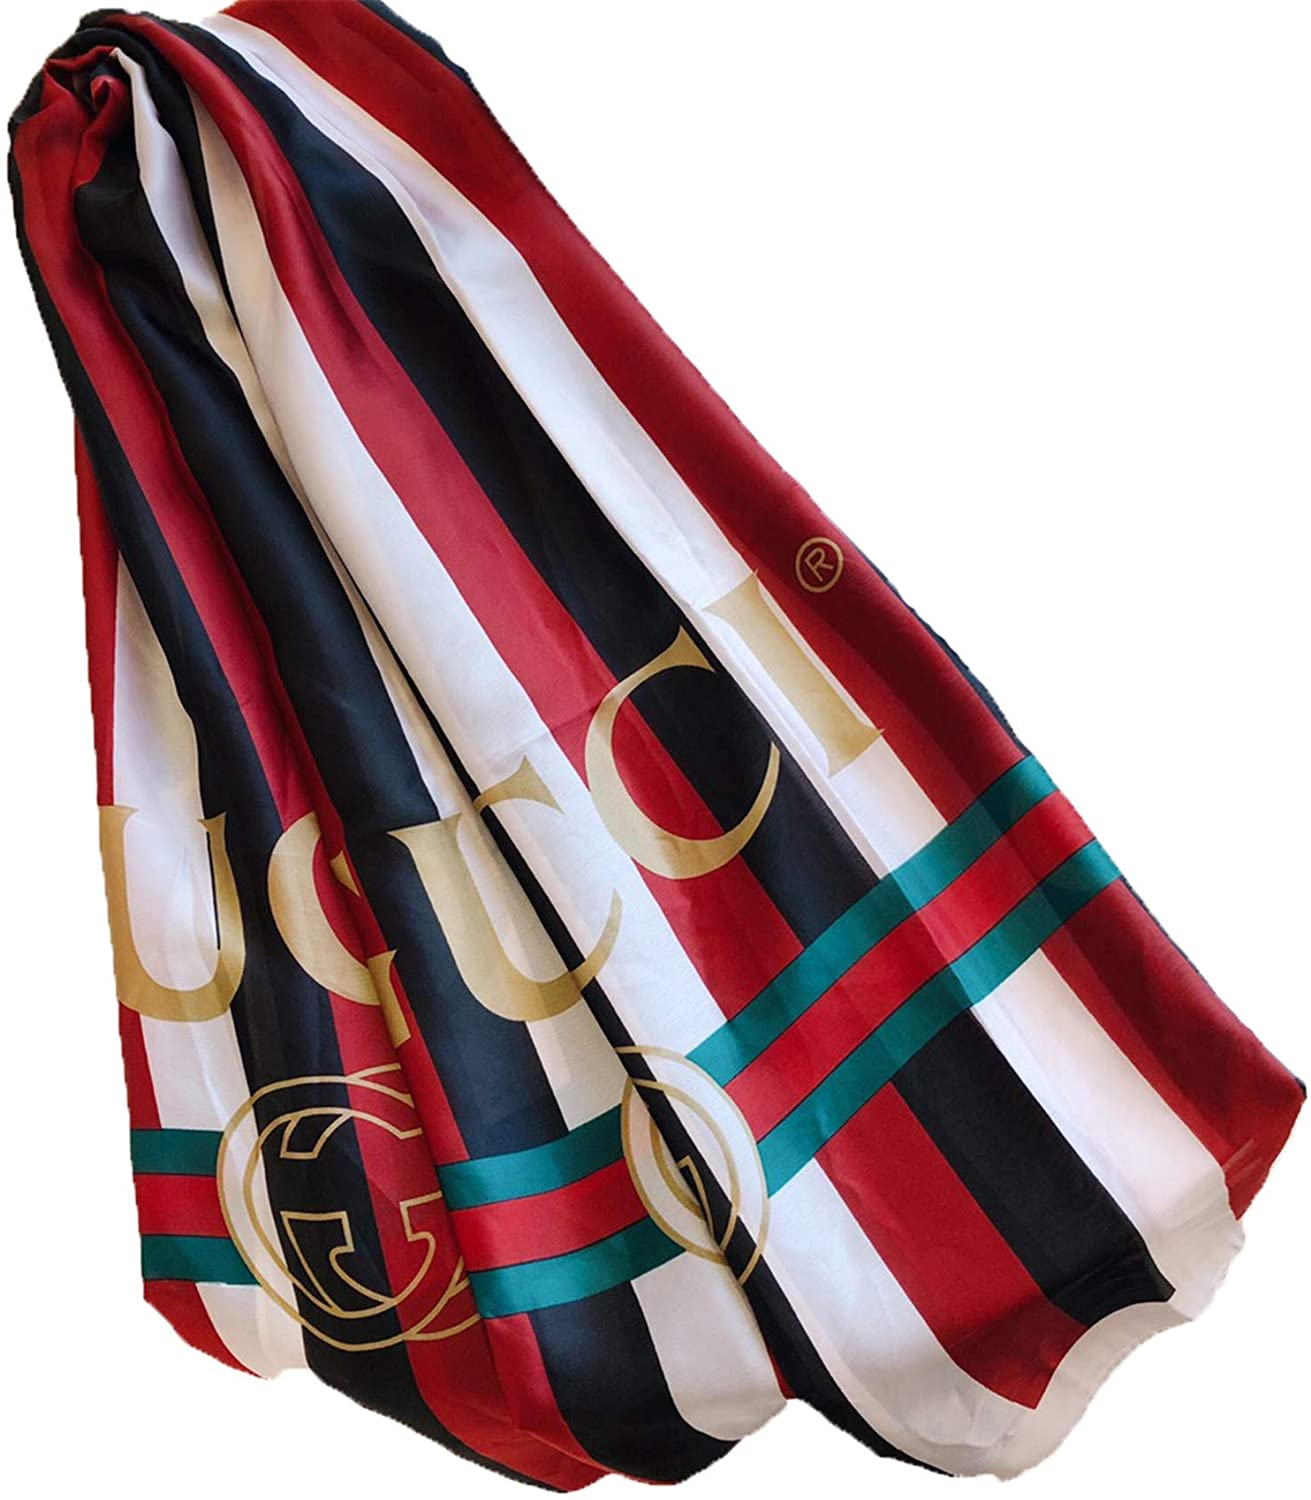 NEW Women and Men silk Scarf four season Scarves Fashion Luxury Holiday gifts scarf